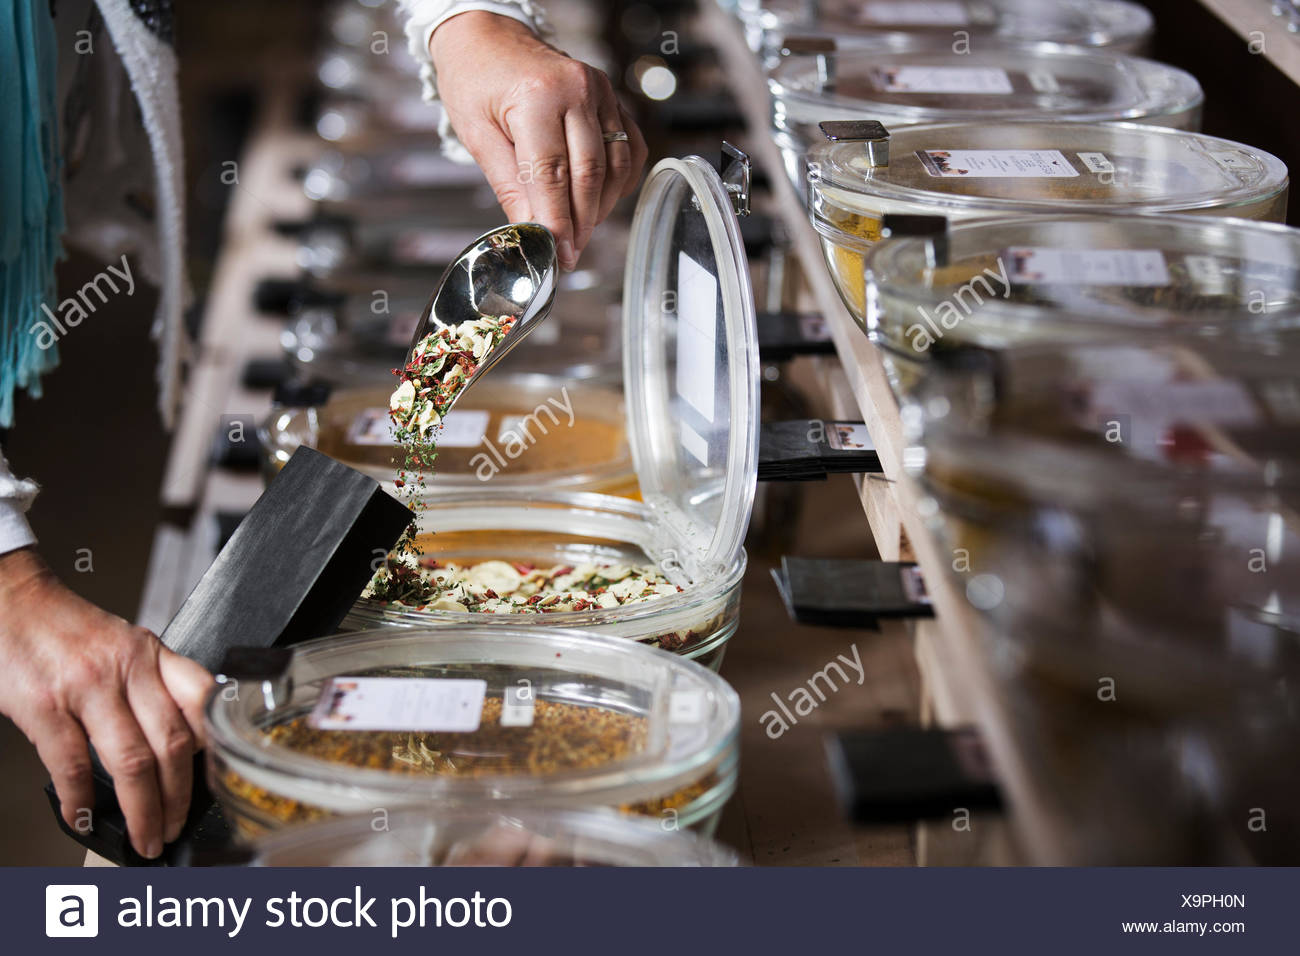 Spice mixture being poured into paper bag, dried garlic, parsley, paprika, chilli, basil and oregano - Stock Image